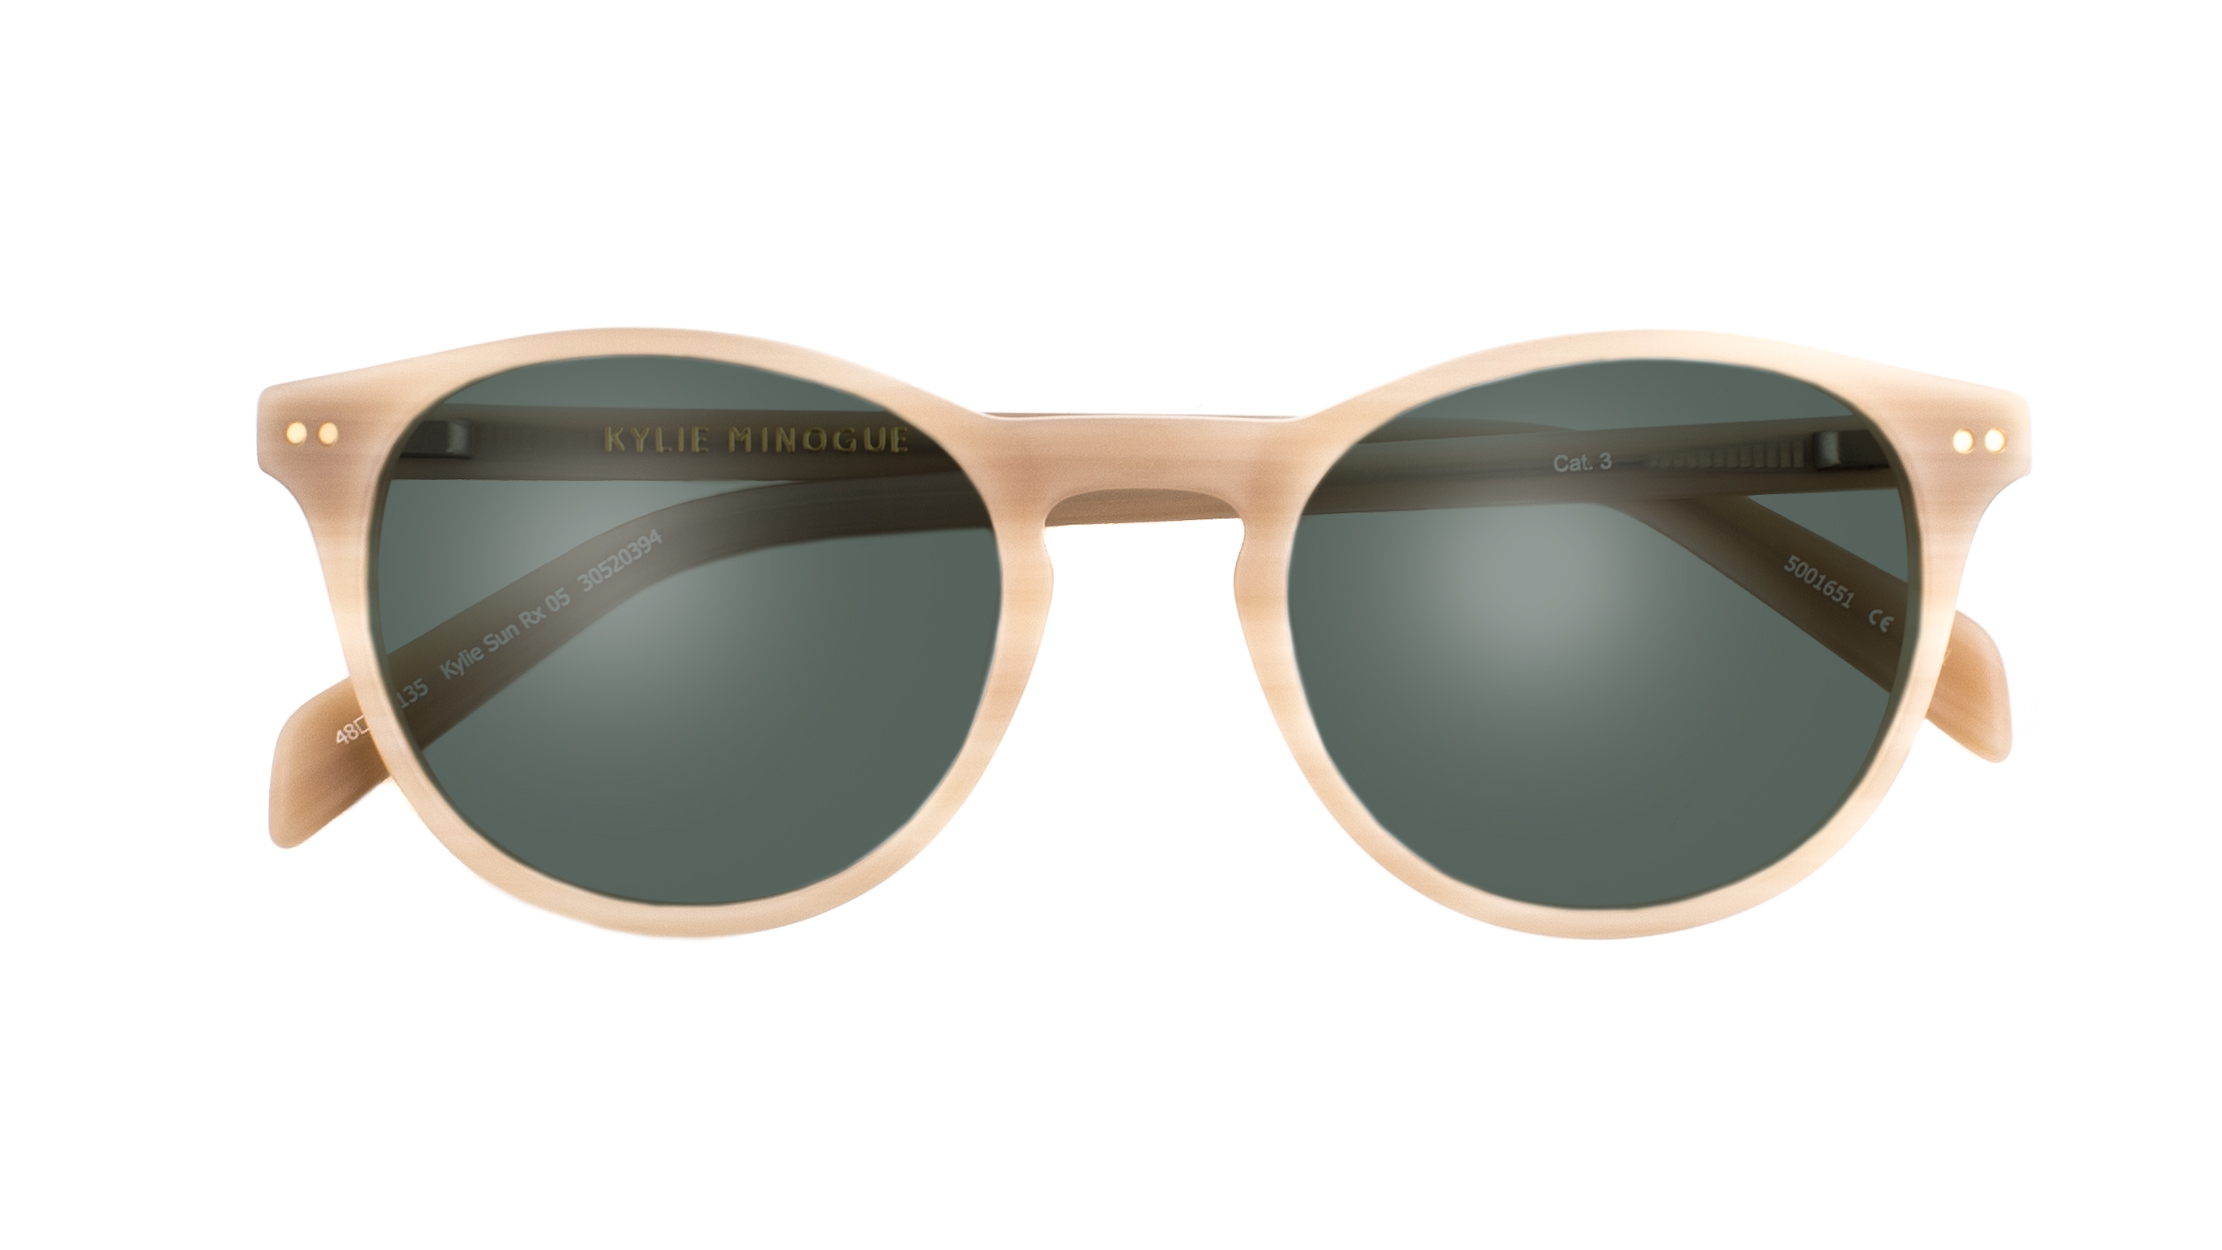 Kylie Minogue Eyewear_Kylie SUN RX 05_SKU 30520394_RRP 2 pairs from $299